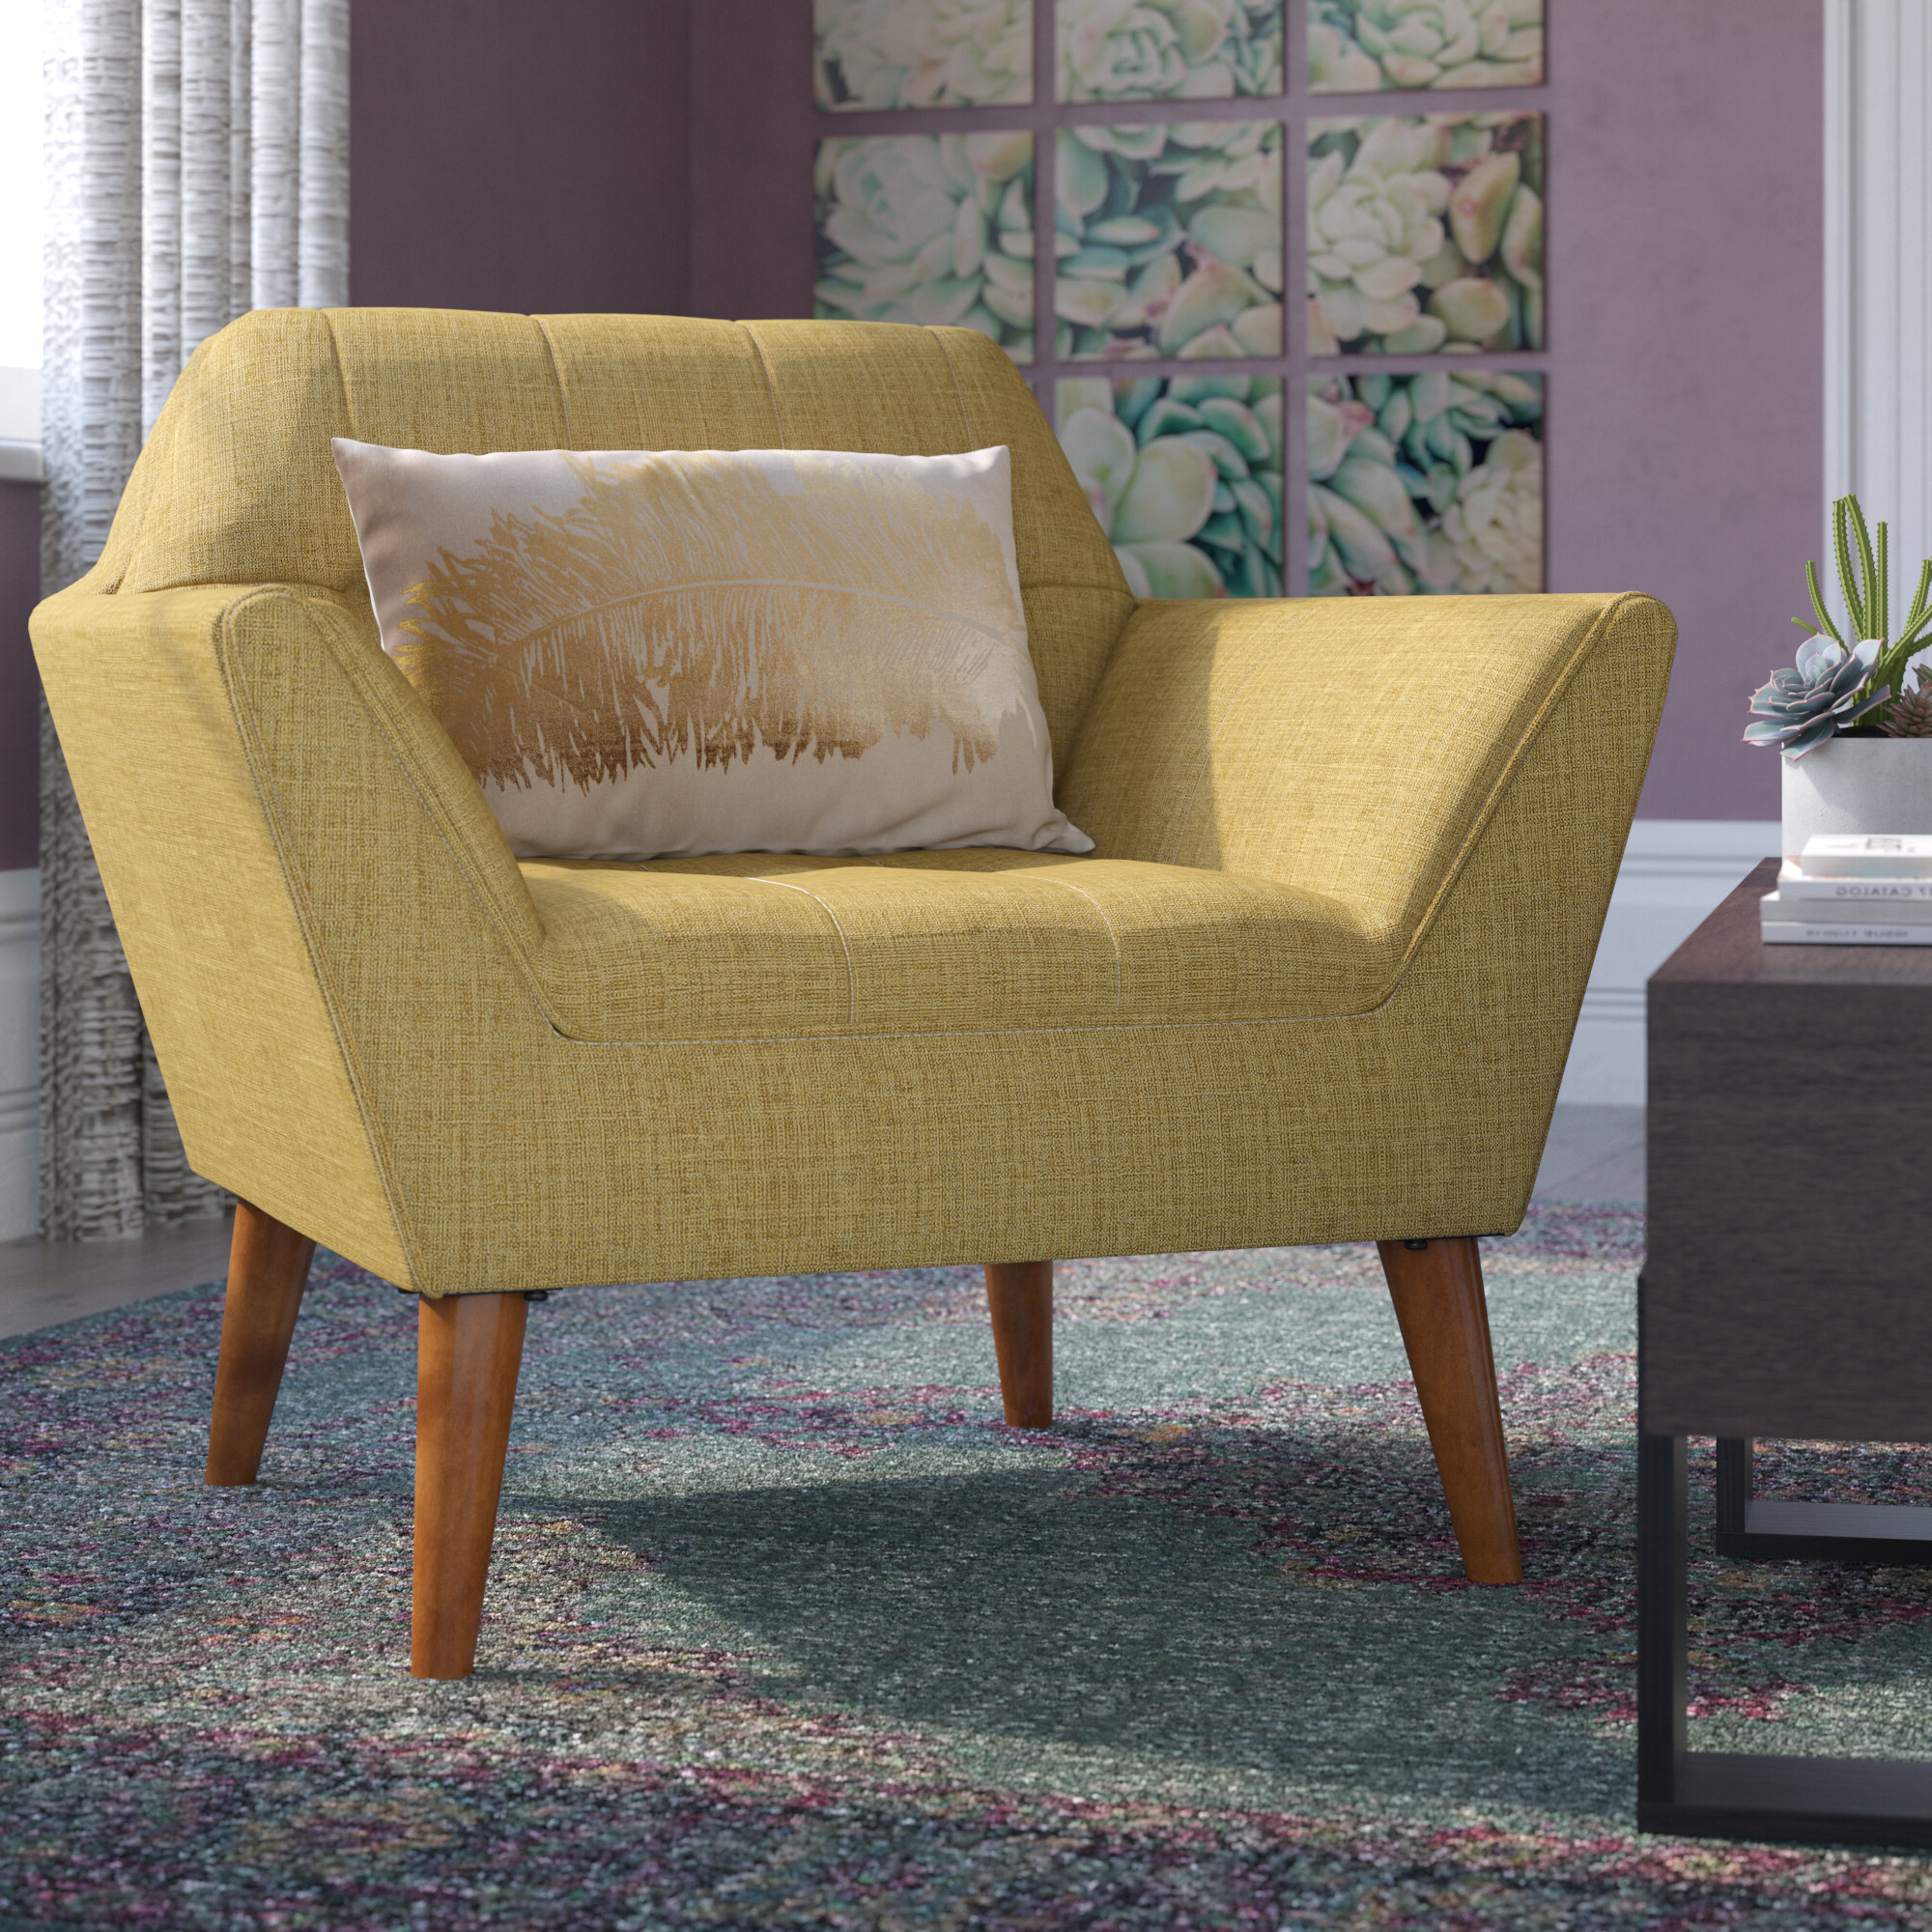 """Belz 38"""" W Tufted Polyester Armchair With Regard To Well Known Belz Tufted Polyester Armchairs (View 2 of 20)"""